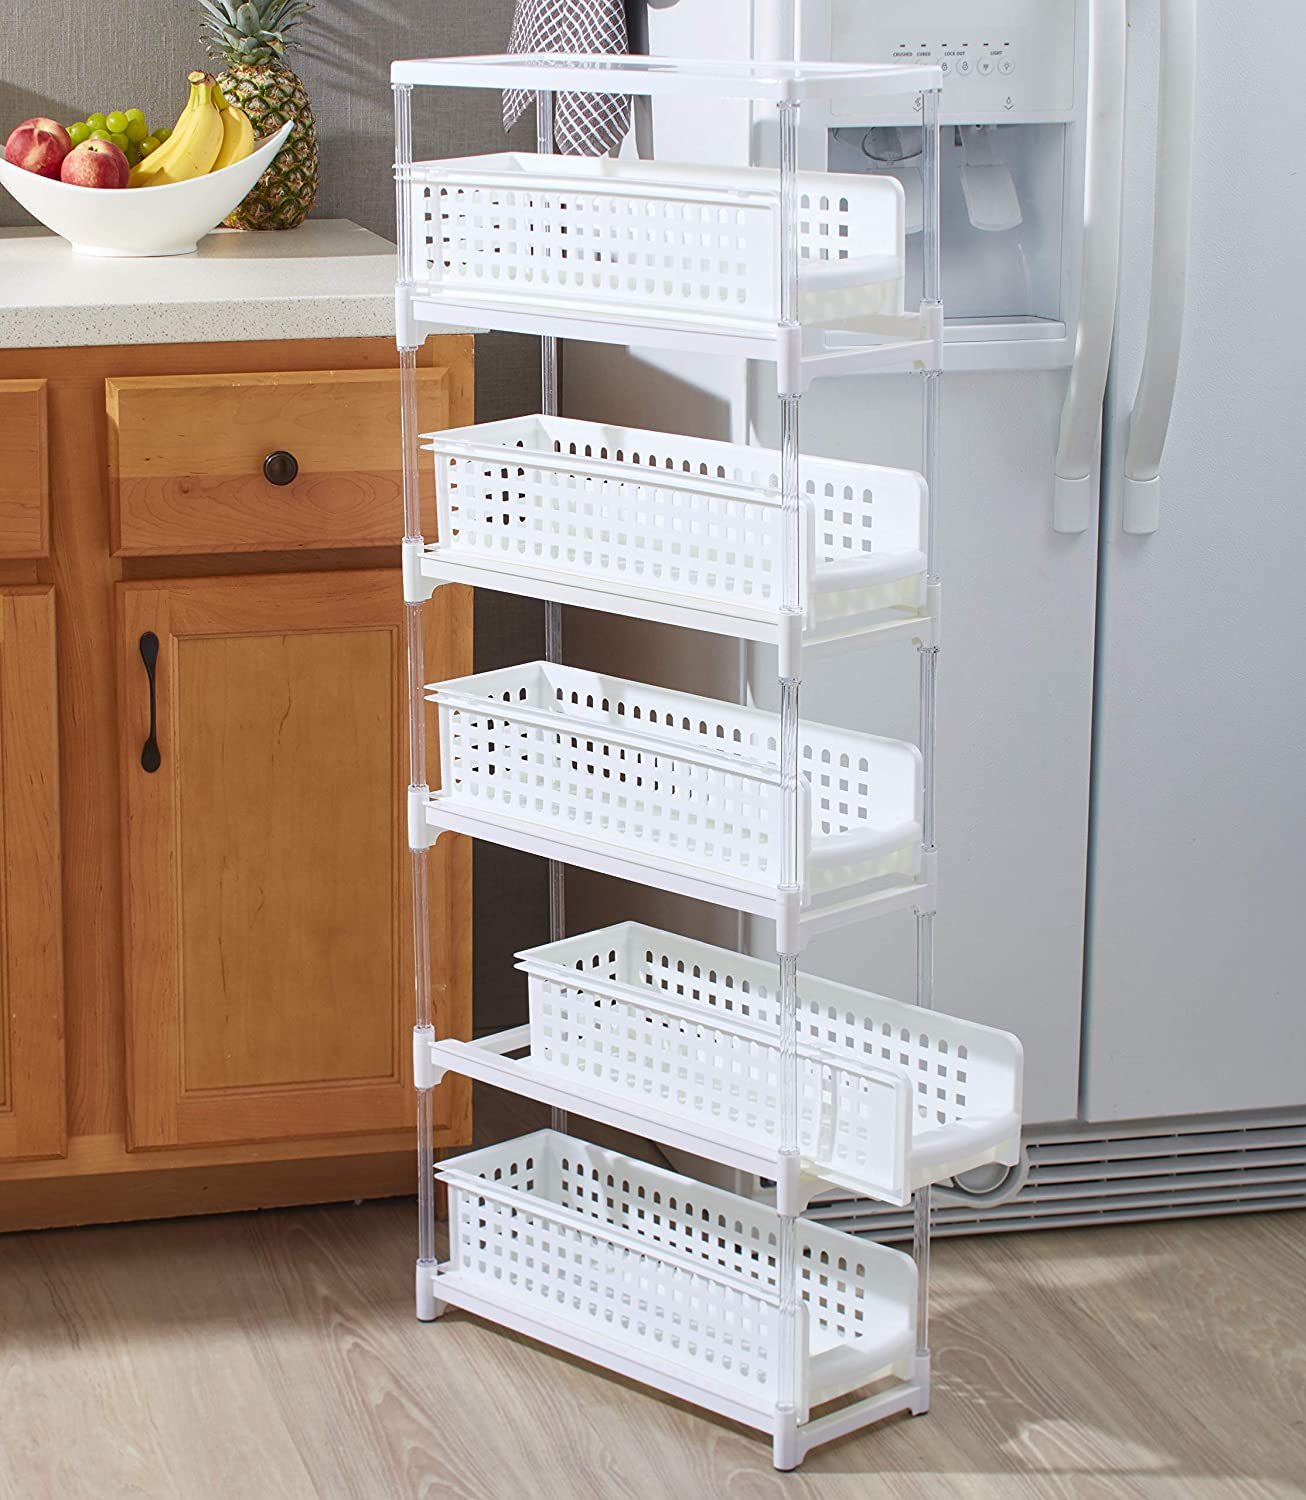 Slim Kitchen Storage with Five Slide Out Drawers for Pantries, Gaps,  Bathrooms